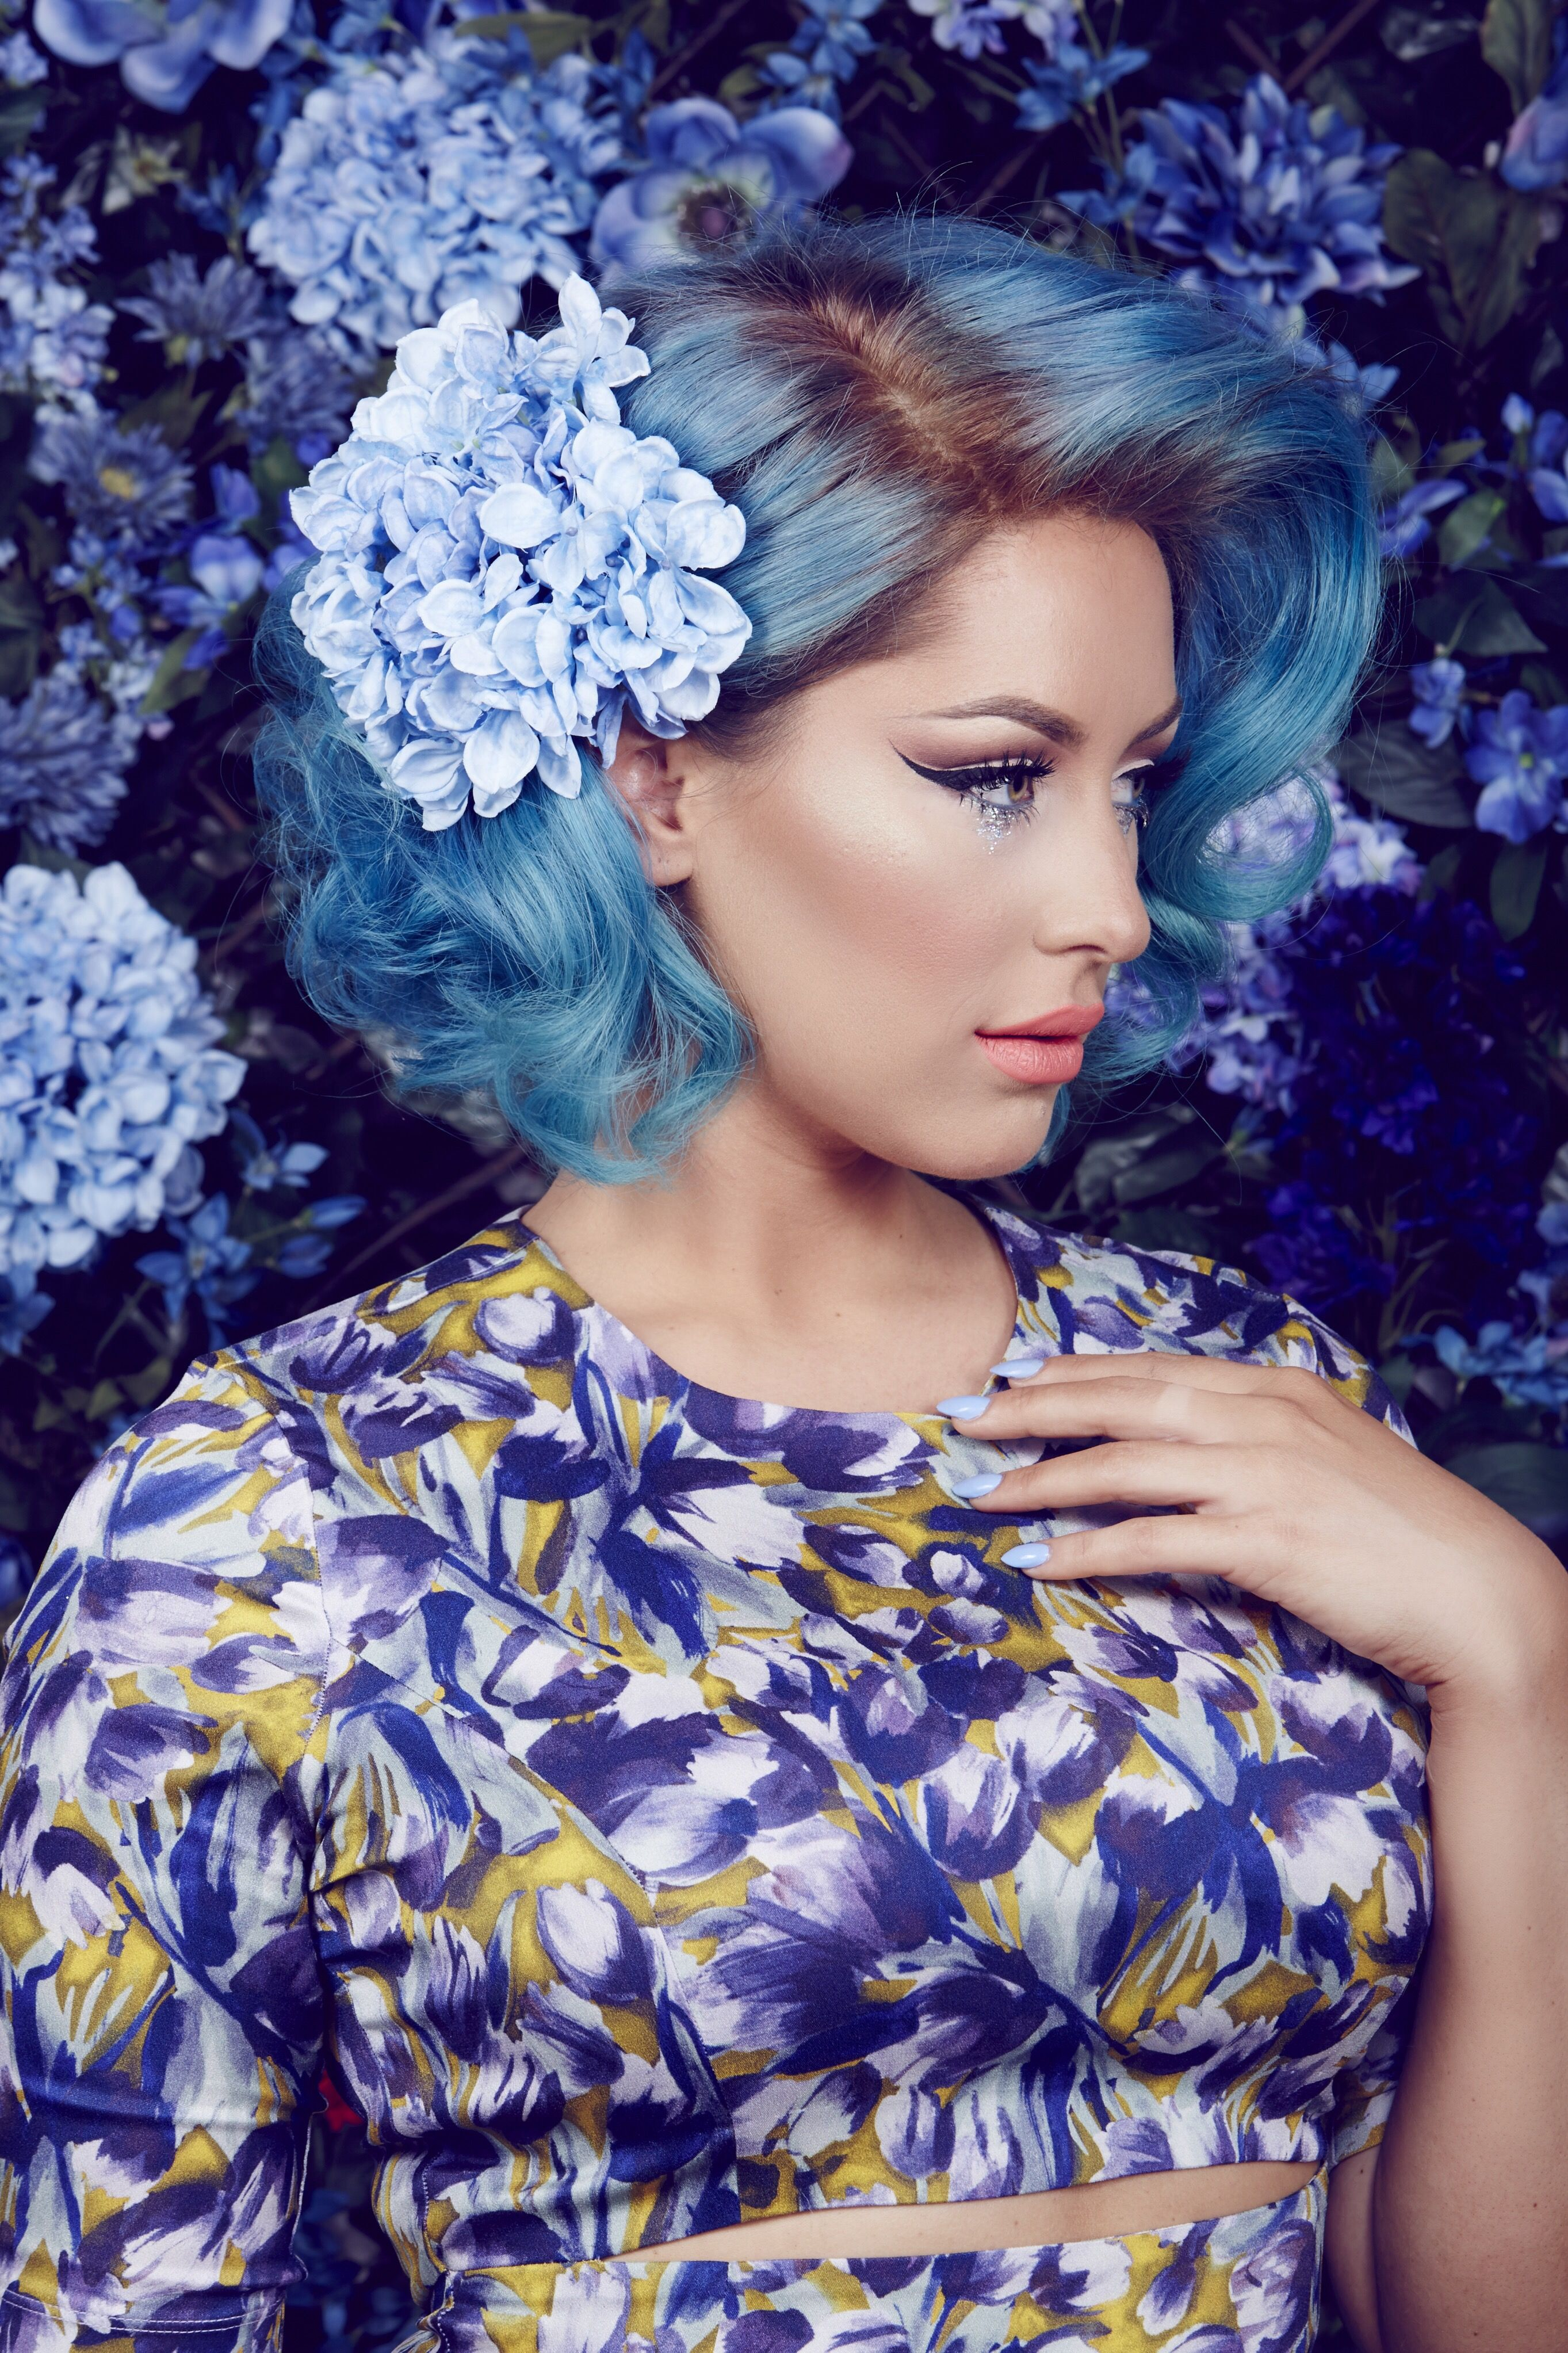 Sign up for ipsy and Get 4-5 Beauty Samples Shipped to Your Door Monthly. Cancel Anytime. #blue #hair #color